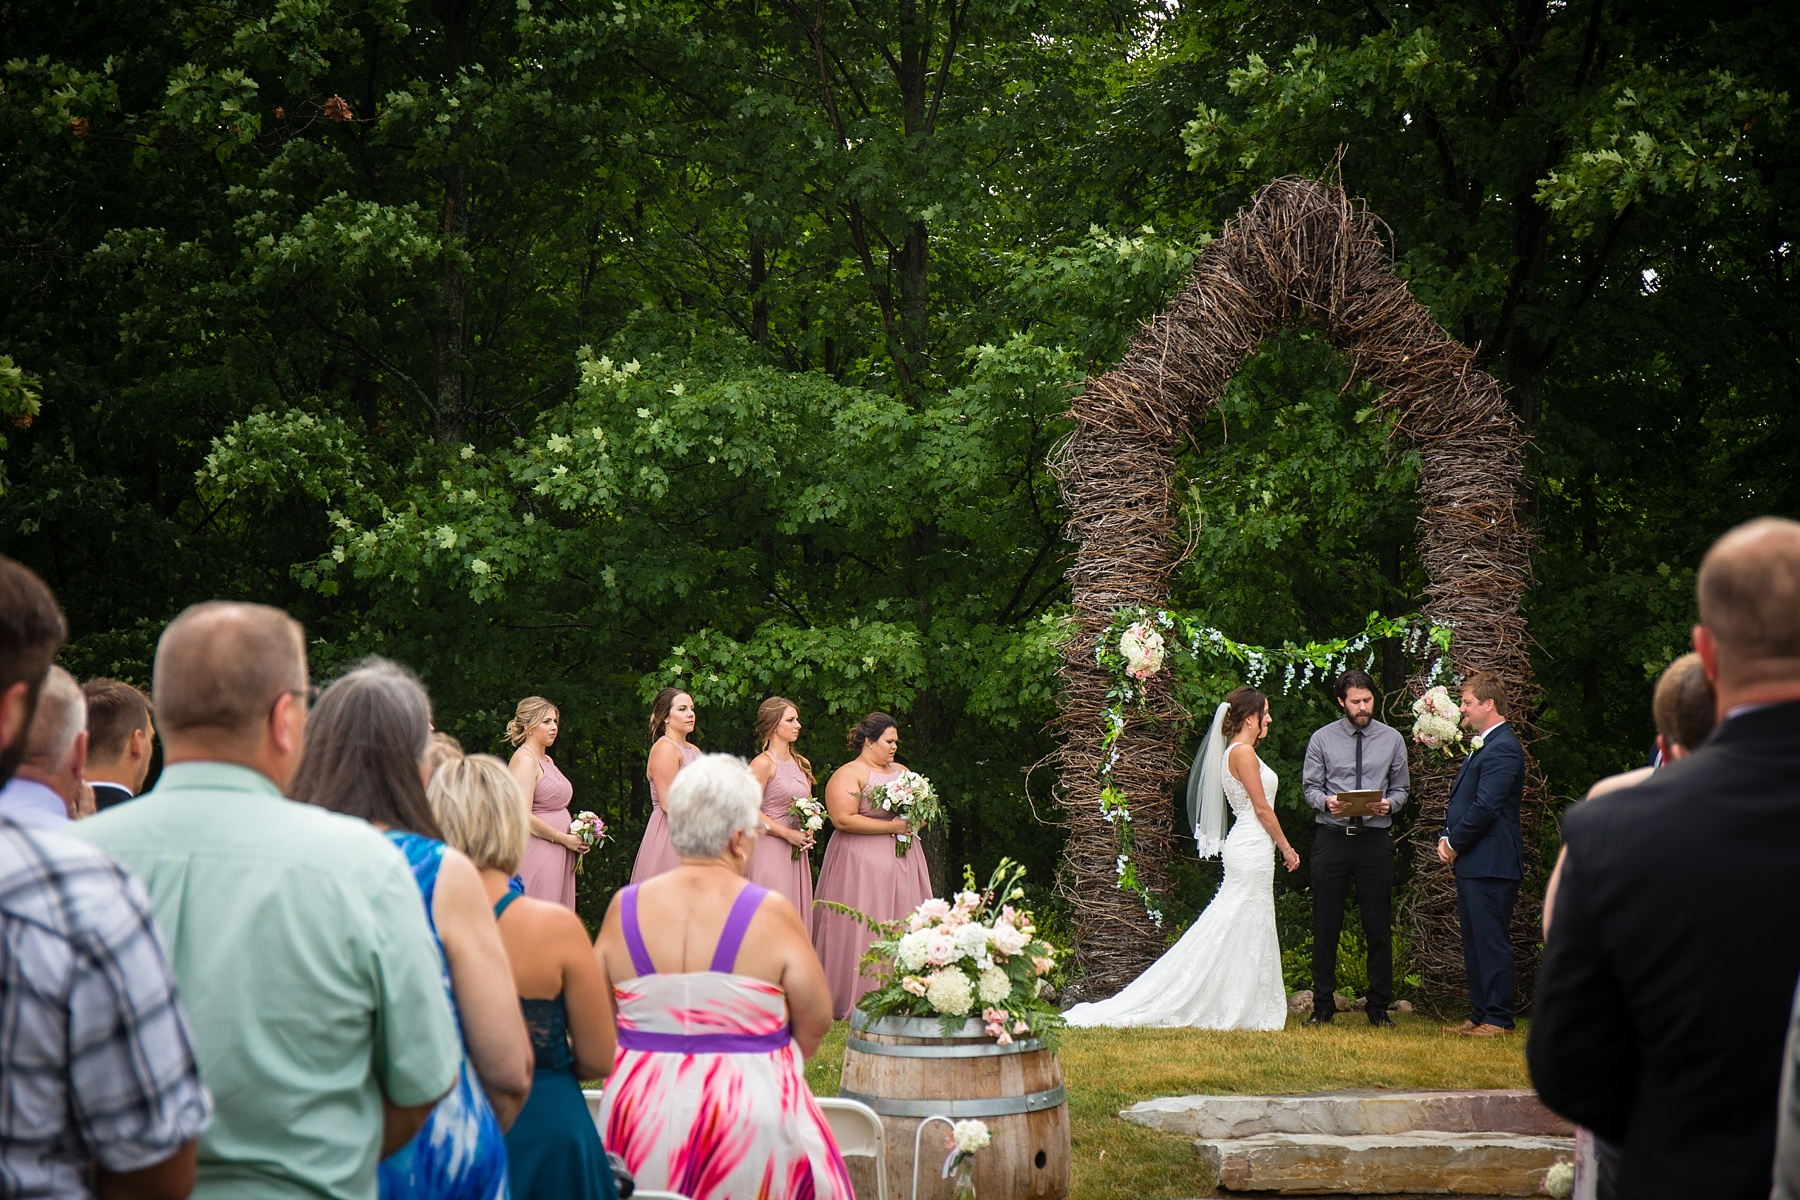 Brandon_Shafer_Photography_Elizabeth_Scott_Traverse_City_Wedding_0032.jpg